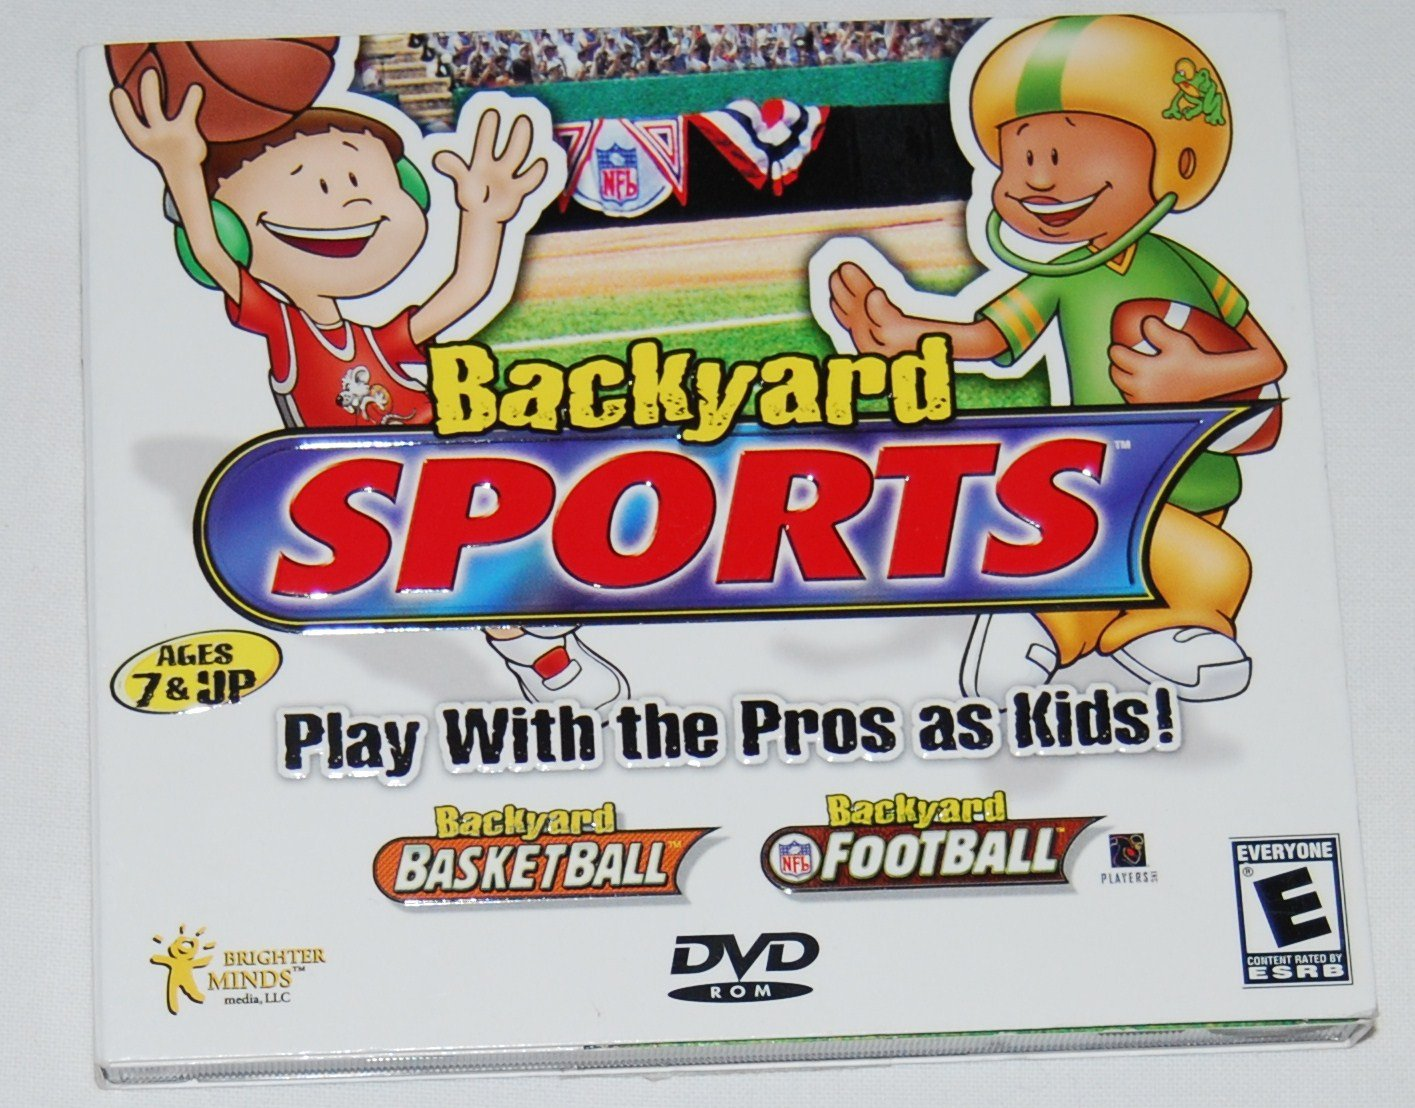 amazon com backyard sports backyard basketball backyard